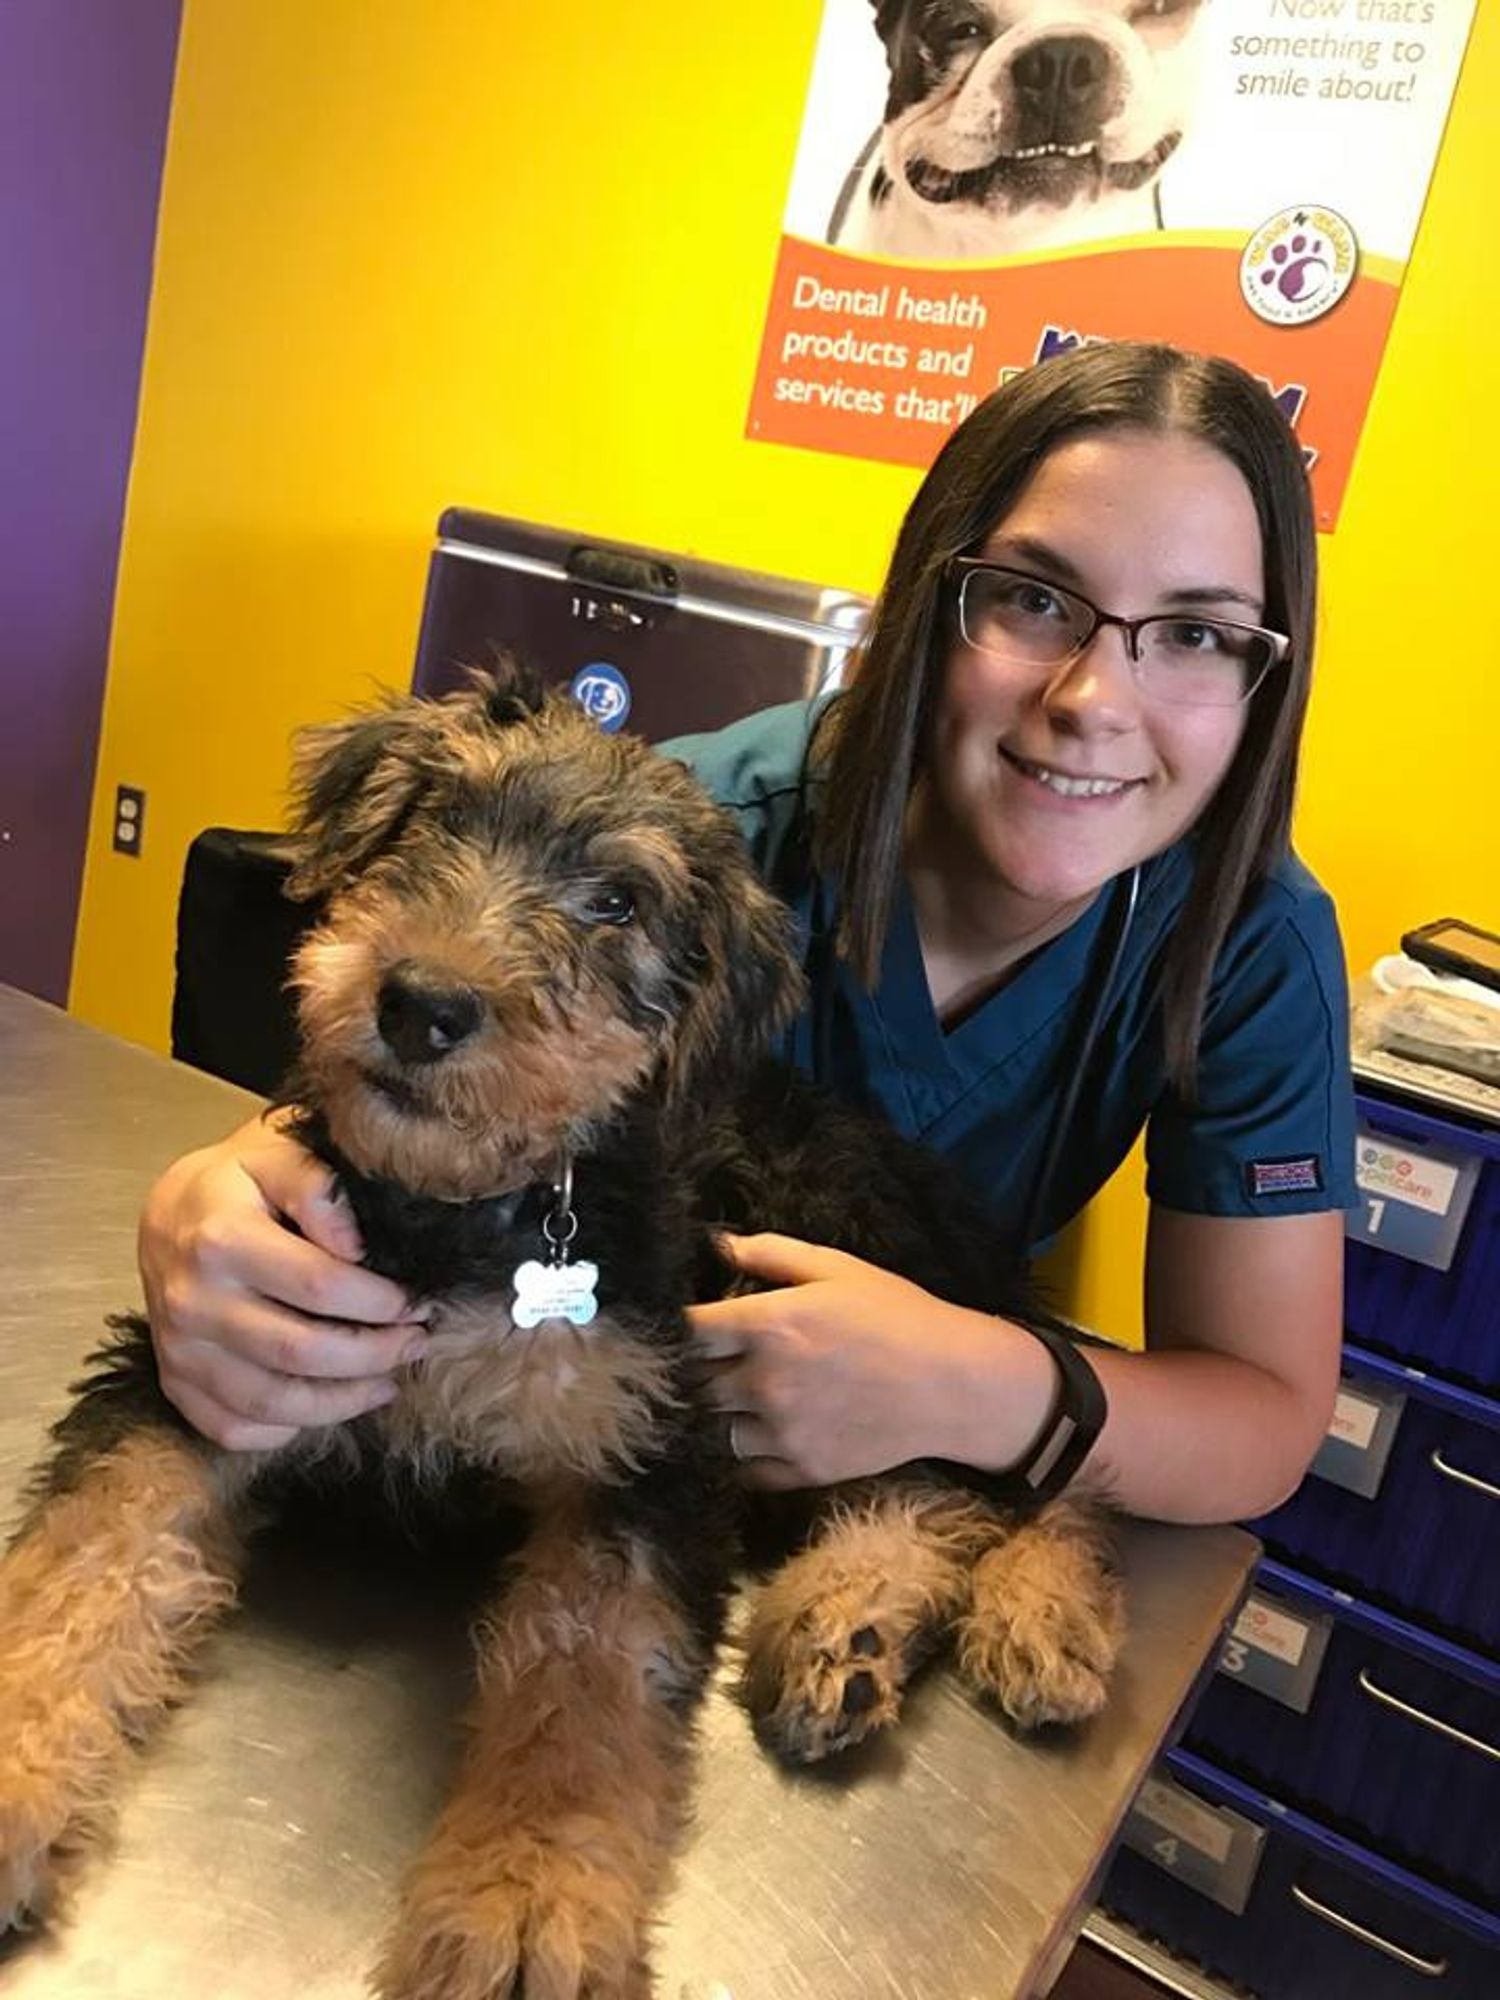 Dr. Heather Venkat at a clinic with an adorable Airedale Terrier puppy